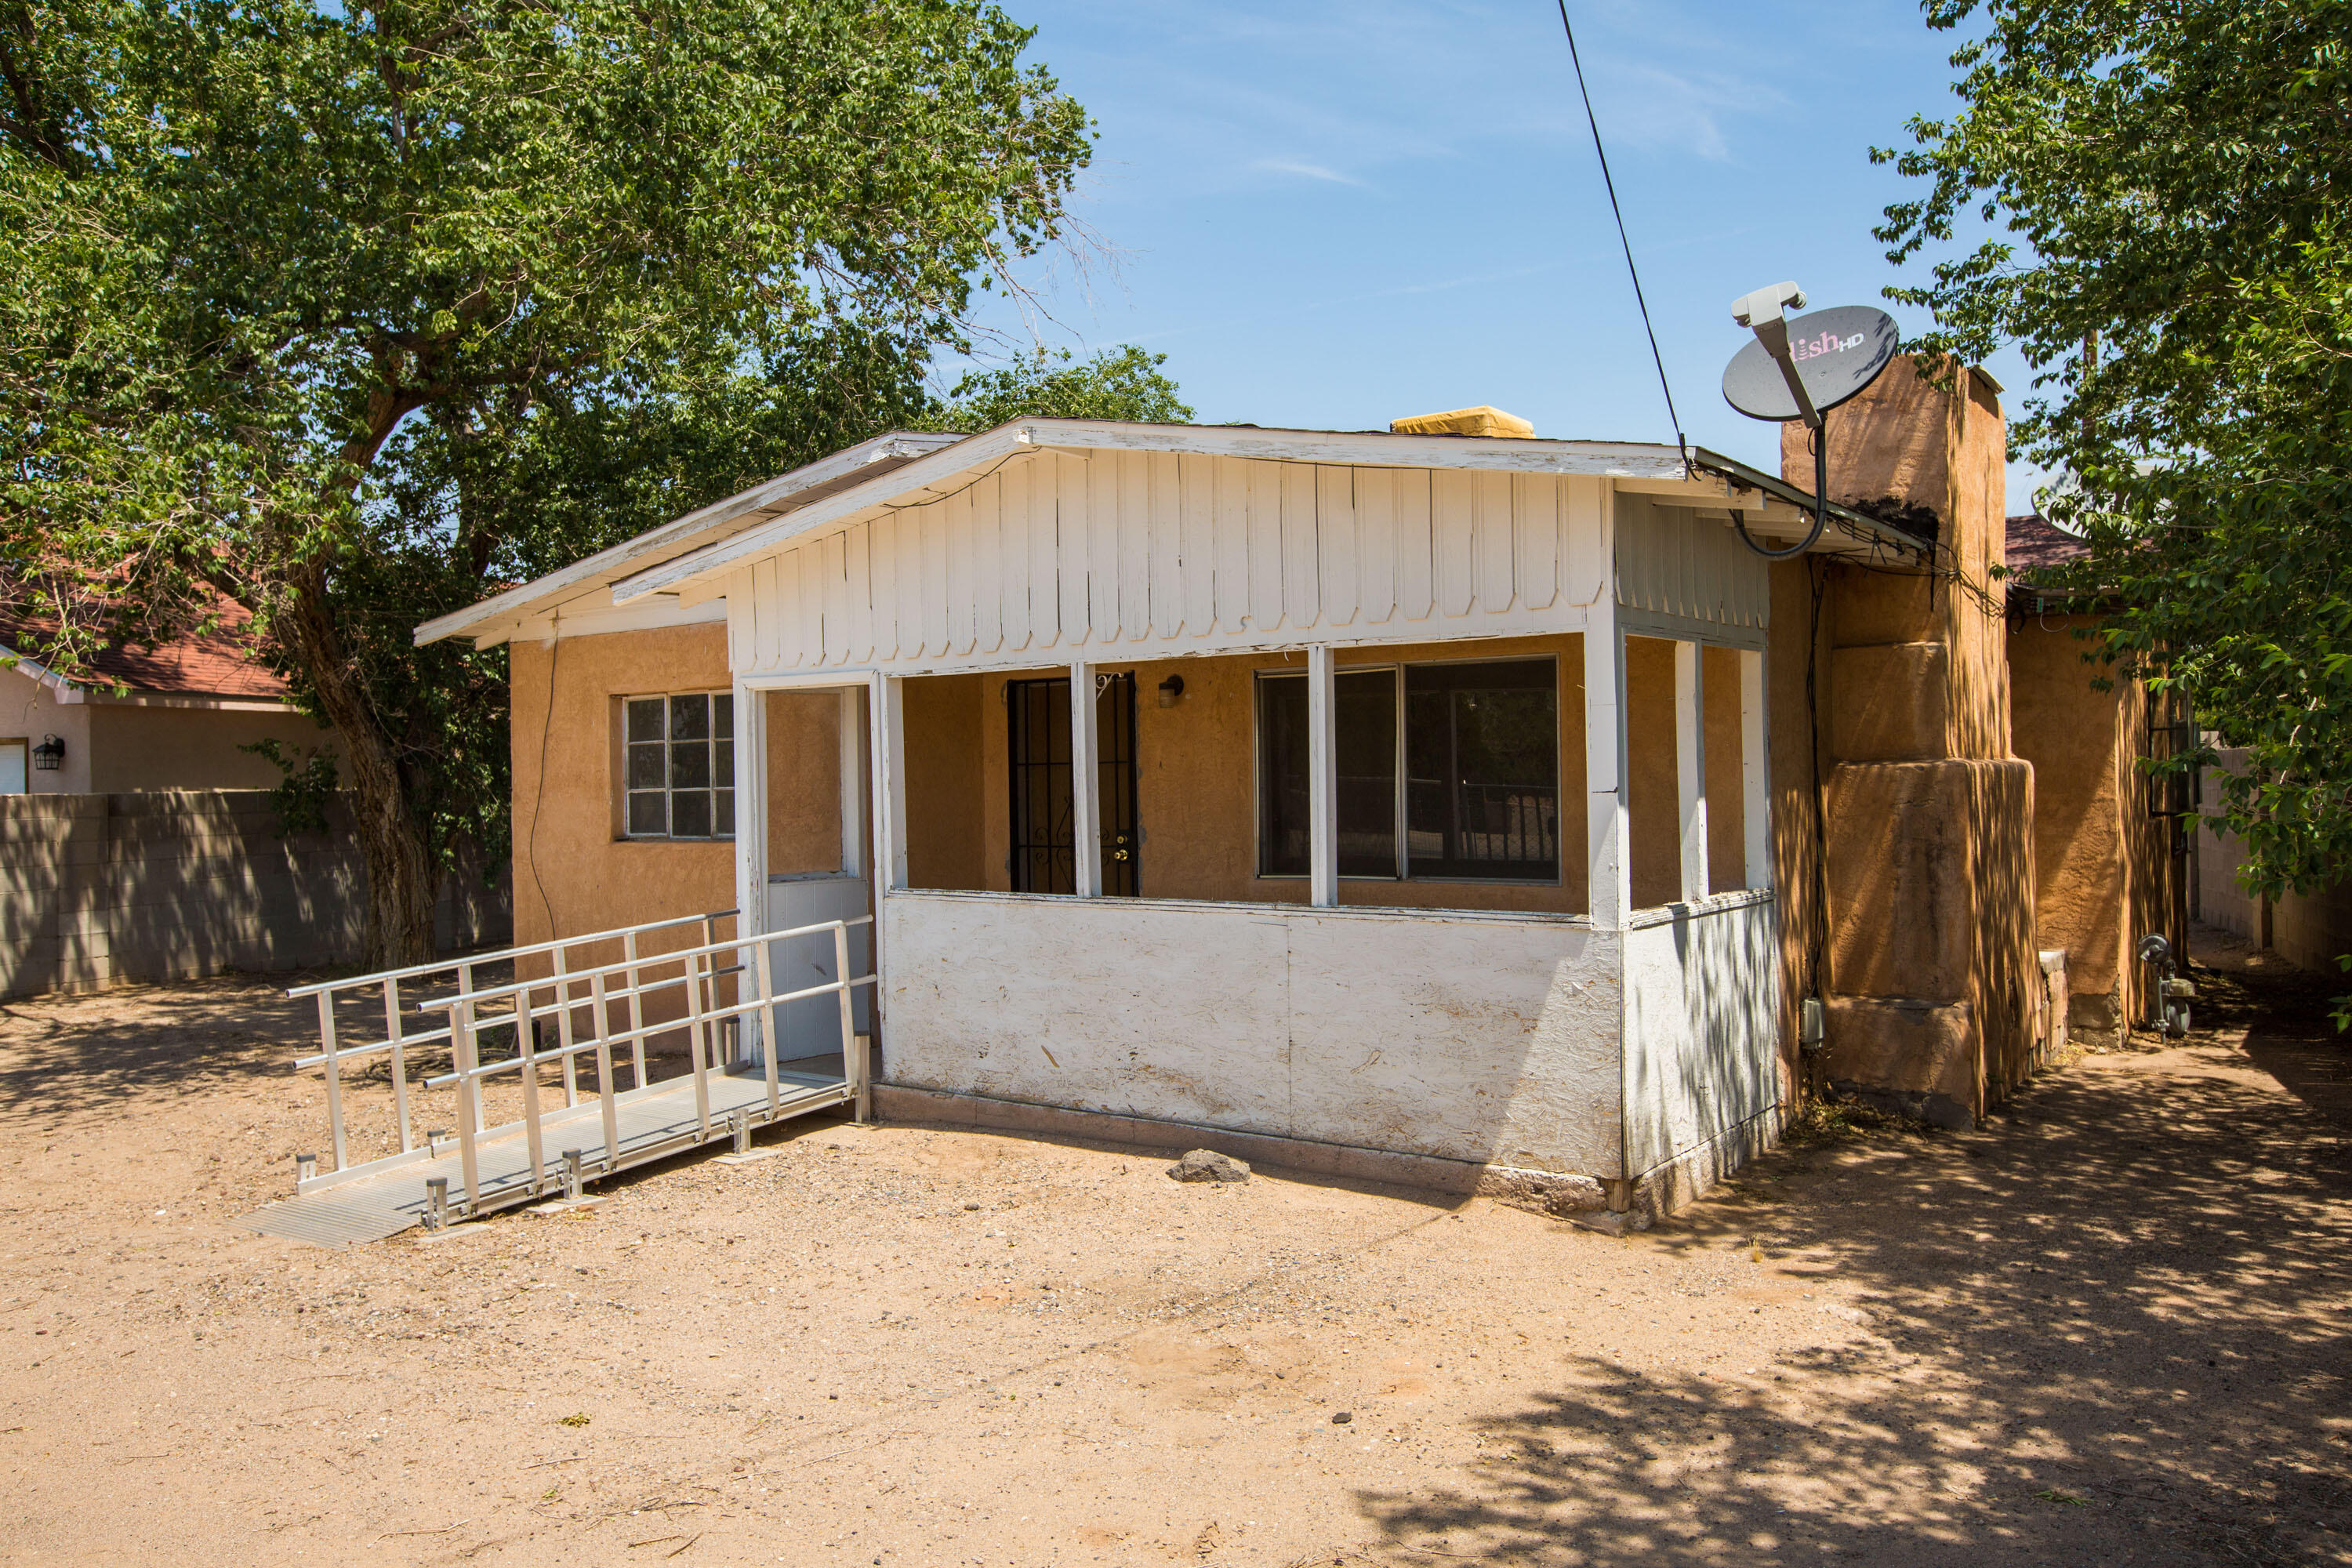 A must see 2 bedroom 1 bath home on .21 acres in the Carlos Rey Subdivision is an investor or handyman's special with loads of potential, backyard access and an a well. Close to many amenities, downtown, Zoo, Bio Park and 20-25 minutes from KAFB/UNM.  This will be an ''As is Sale''.